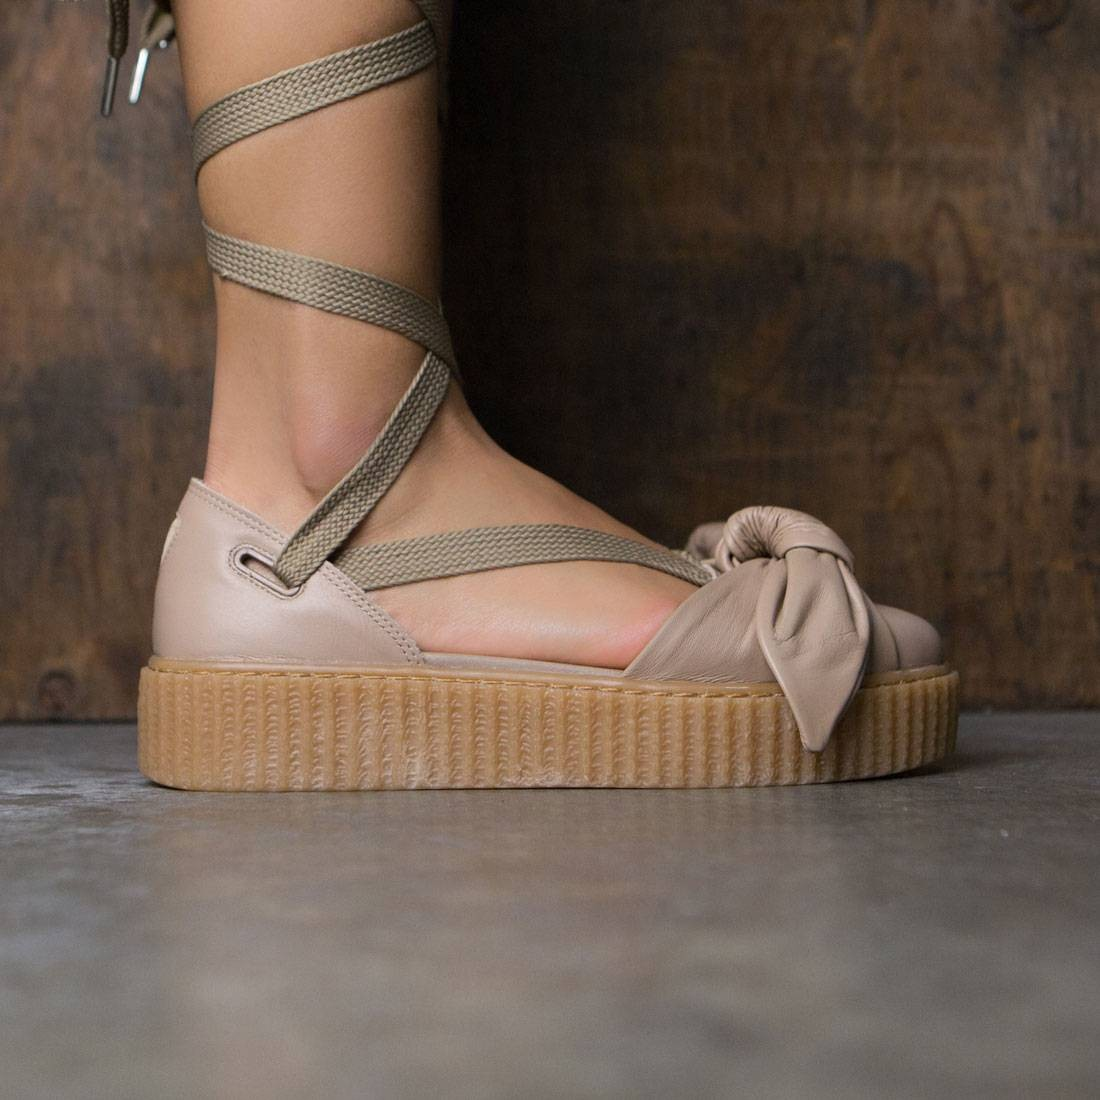 competitive price 11b61 cf974 Puma x Fenty By Rihanna Women Bow Creeper Sandal (natural / oatmeal)